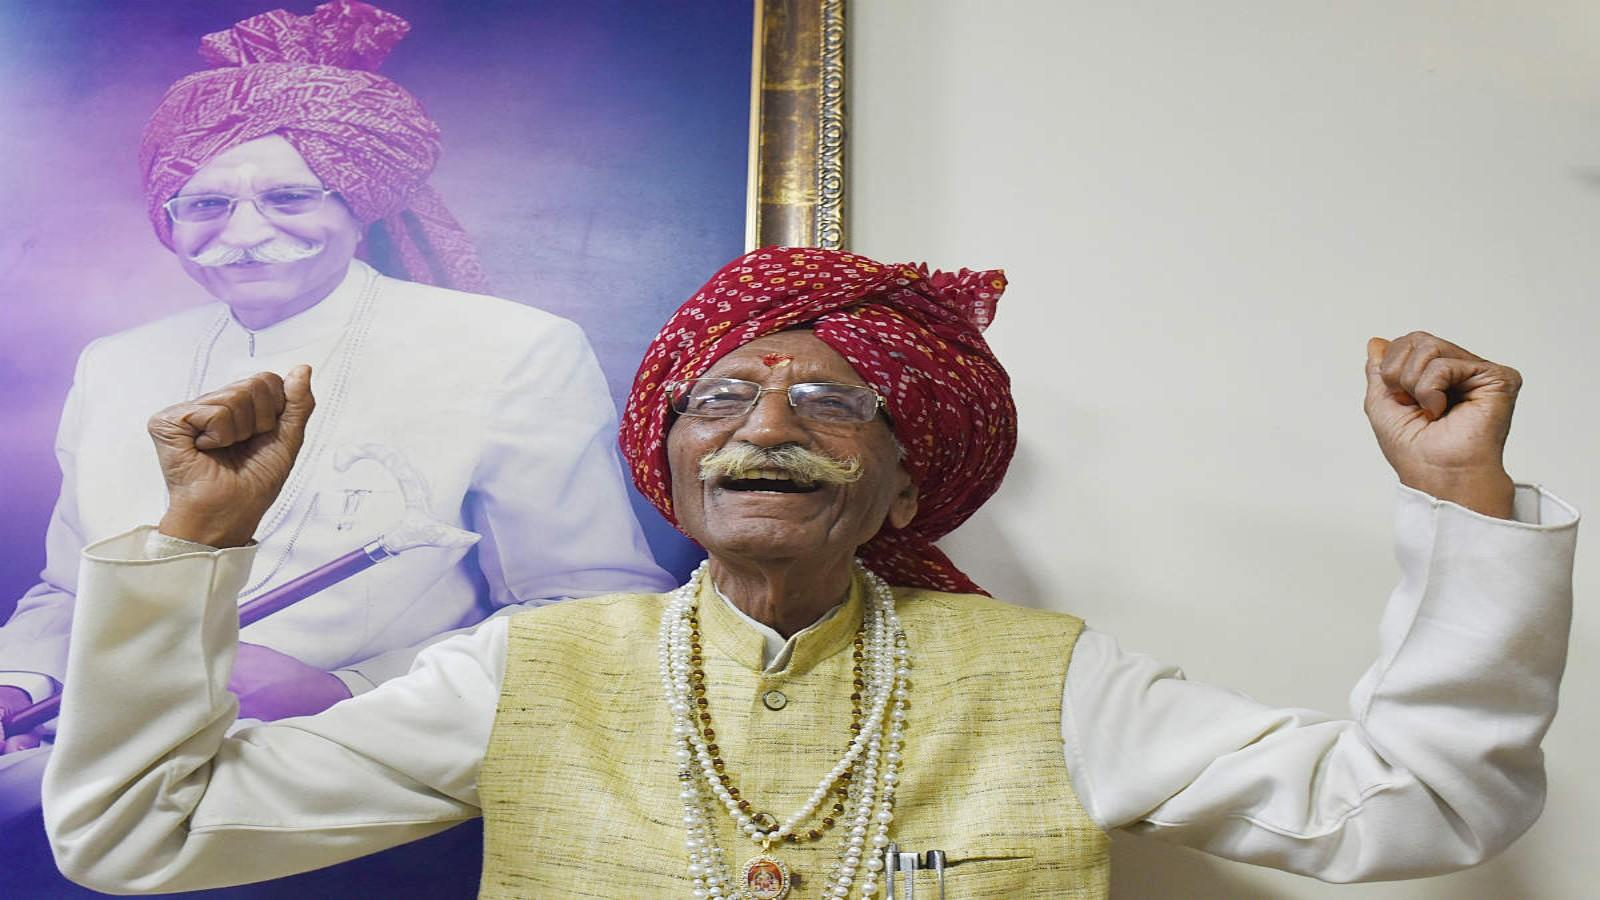 grand-old-man-of-mdh-spices-passes-away-at-age-of-97